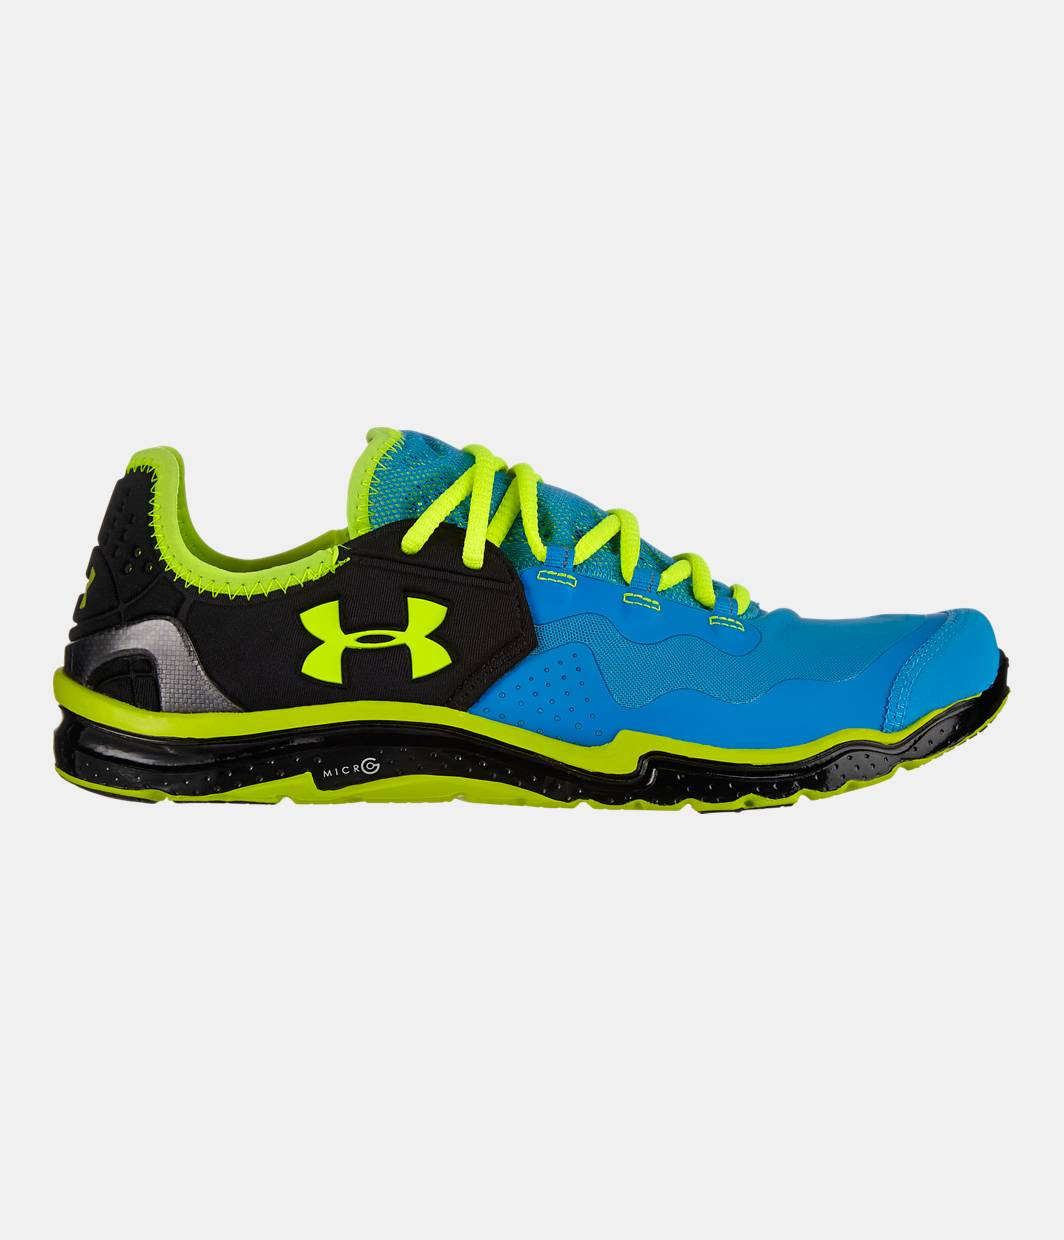 Under Armour Charge Rc Running Shoes